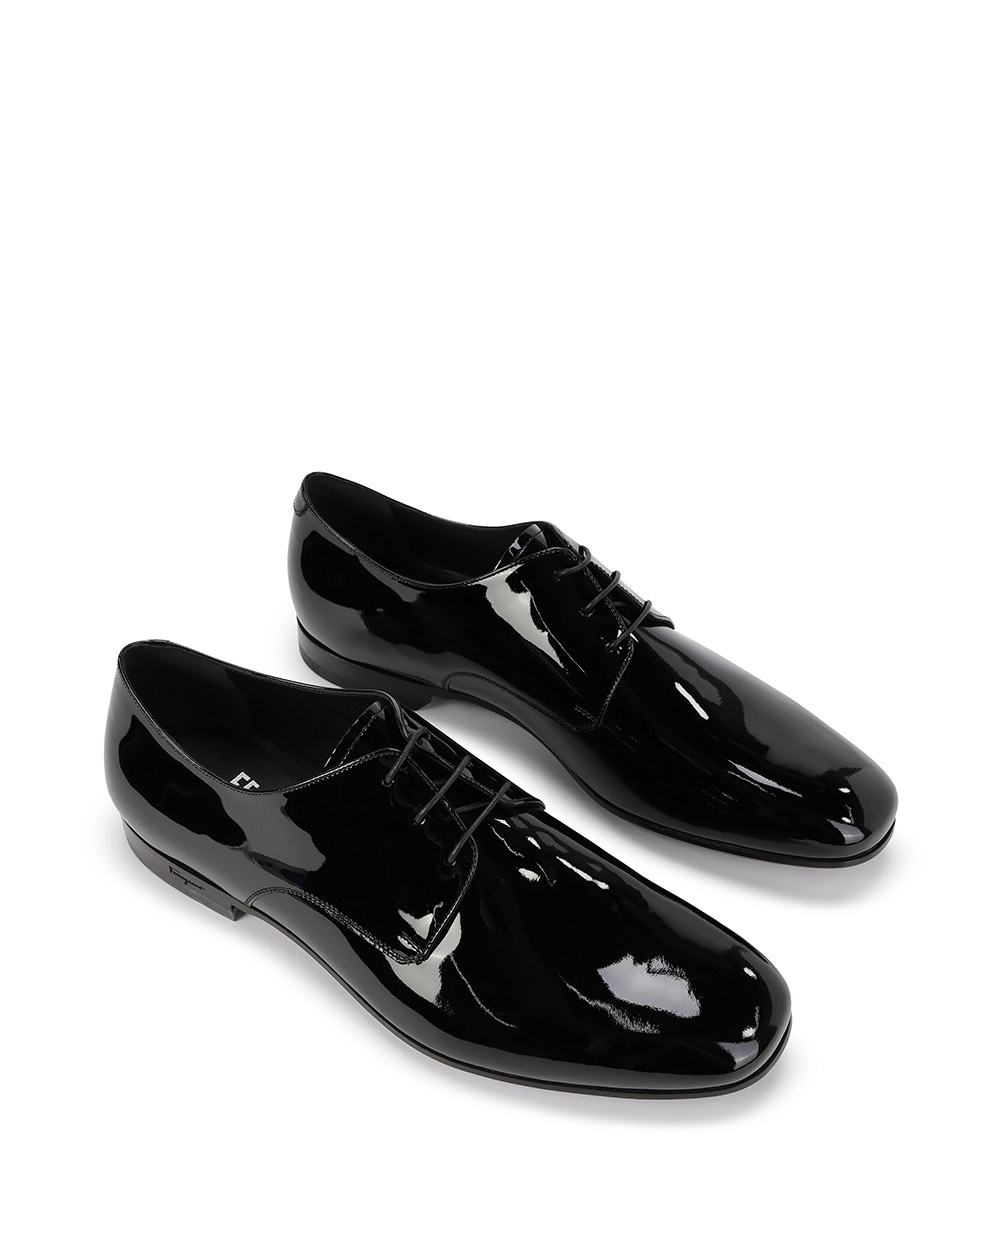 Patent Leather Oxford Shoes 1